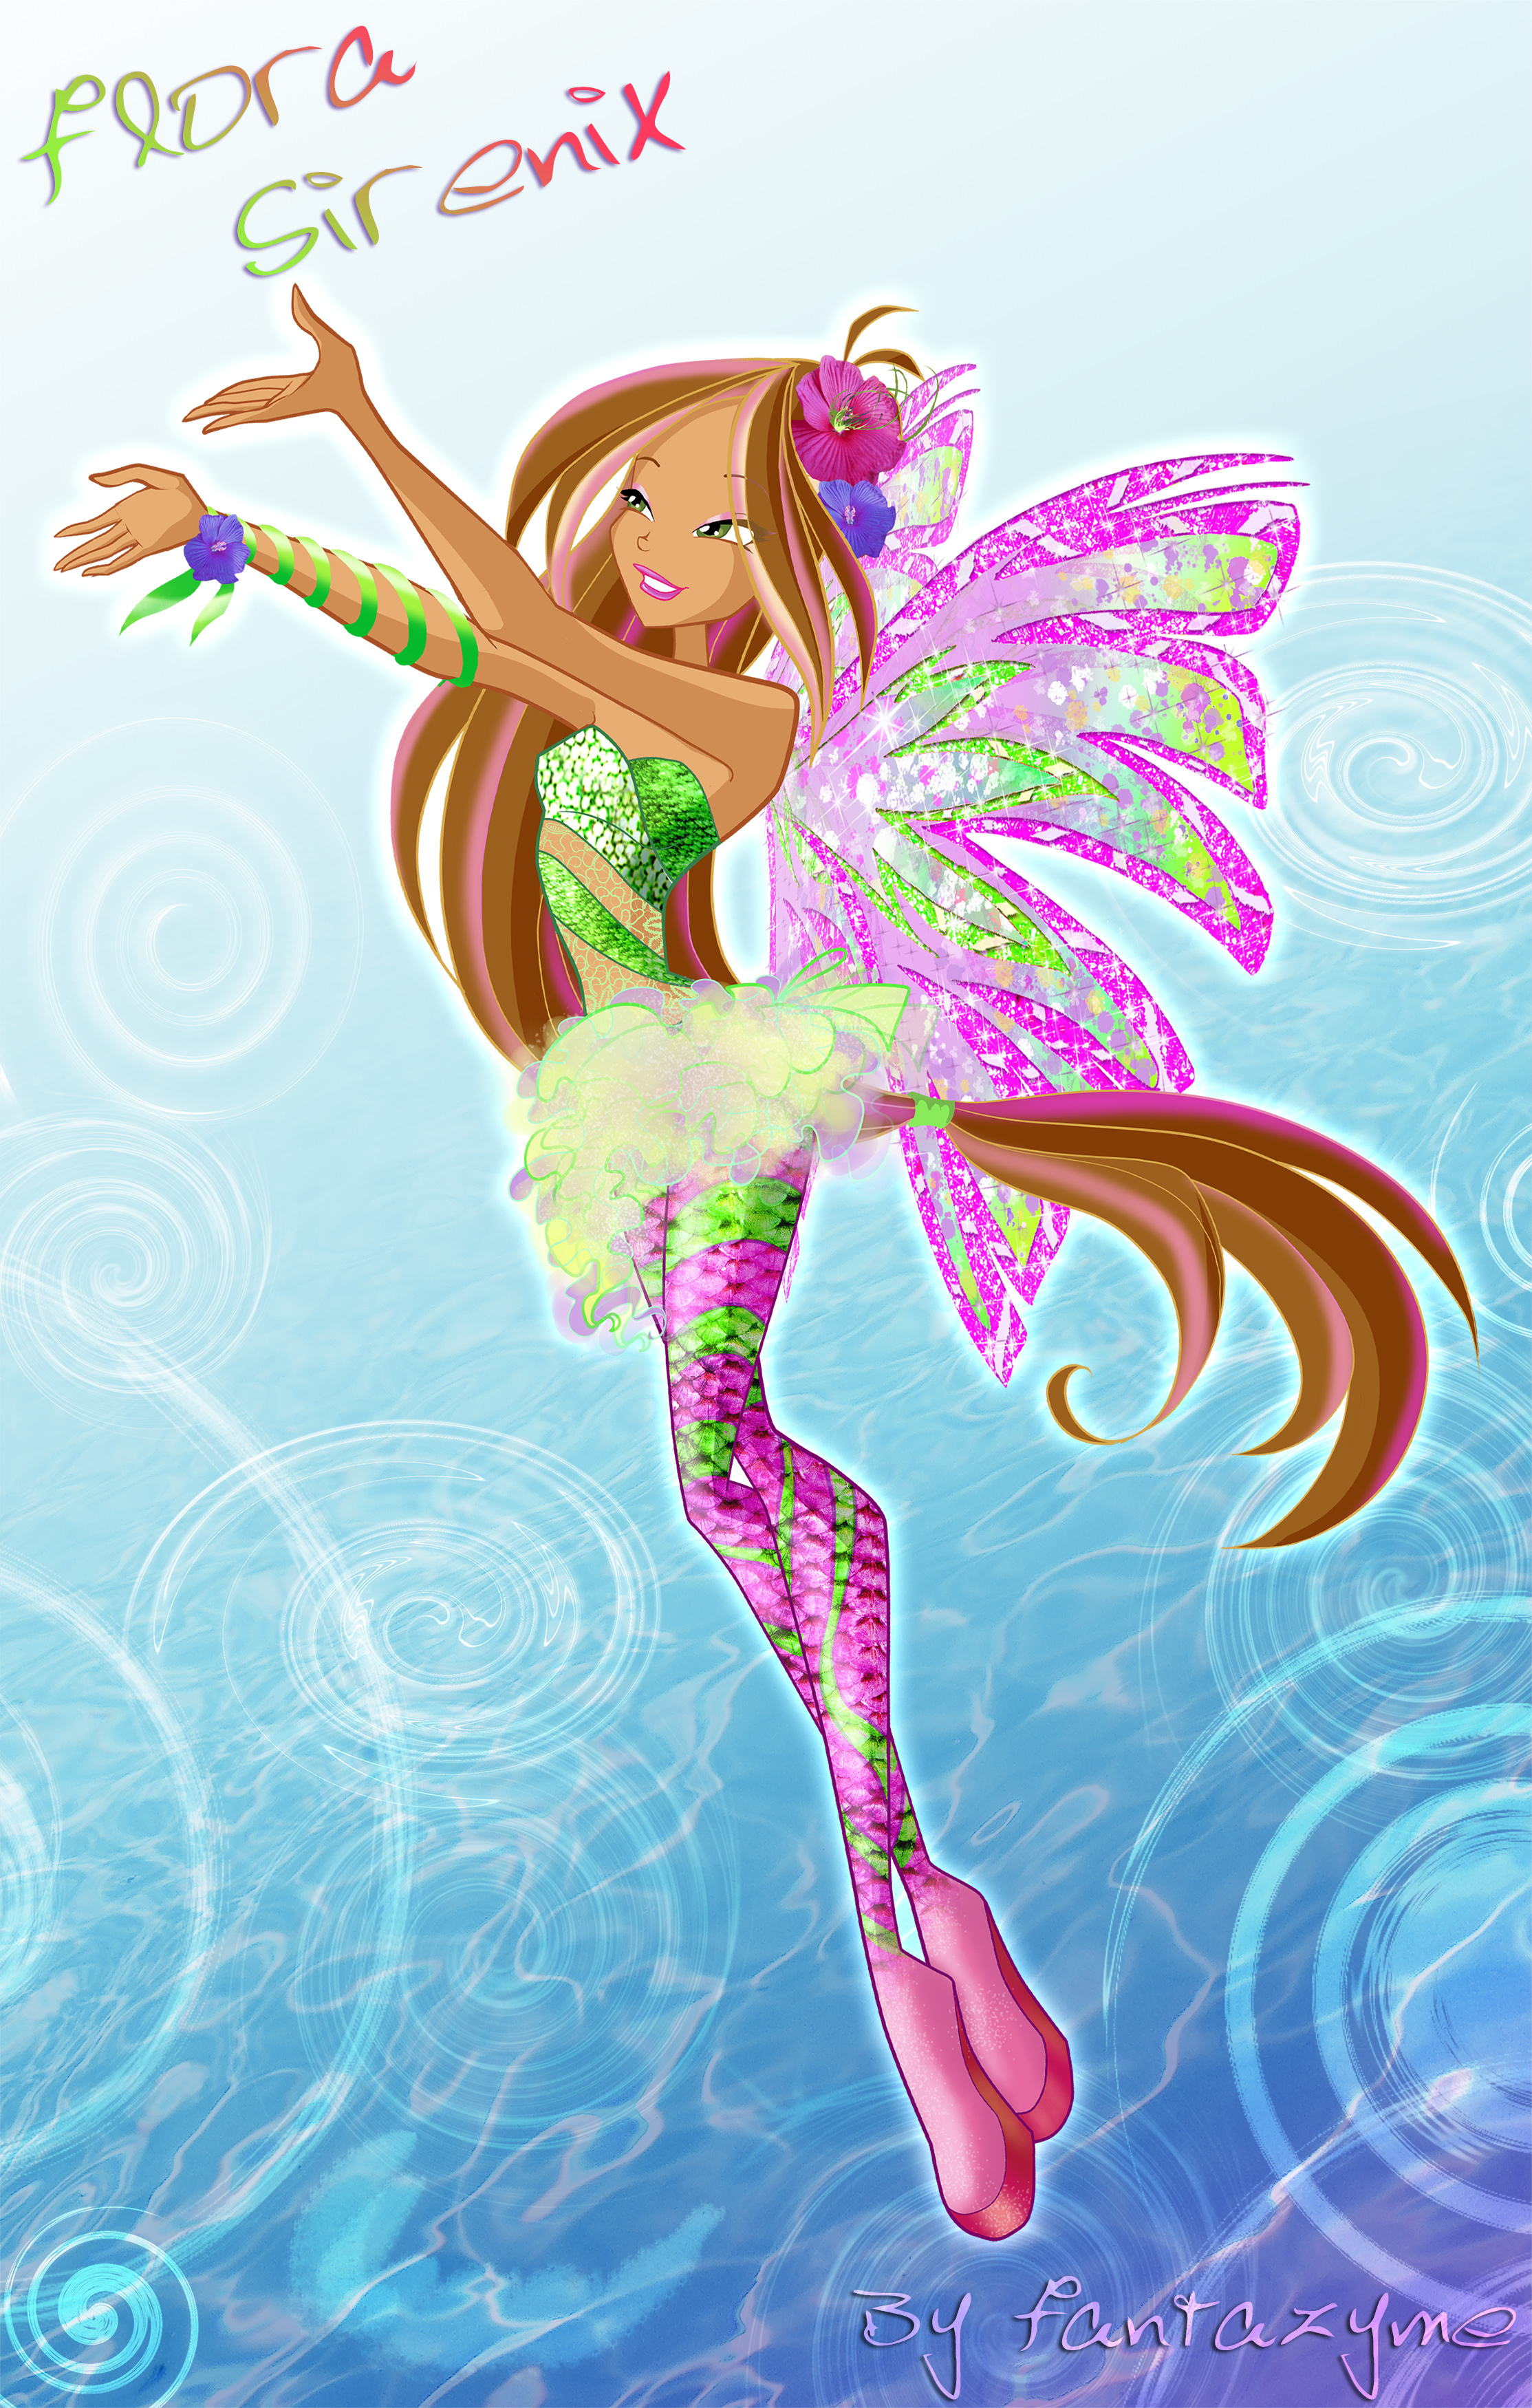 The Winx Club Winx club Flora 5 season Sirenix\Винкс клуб 5 ...